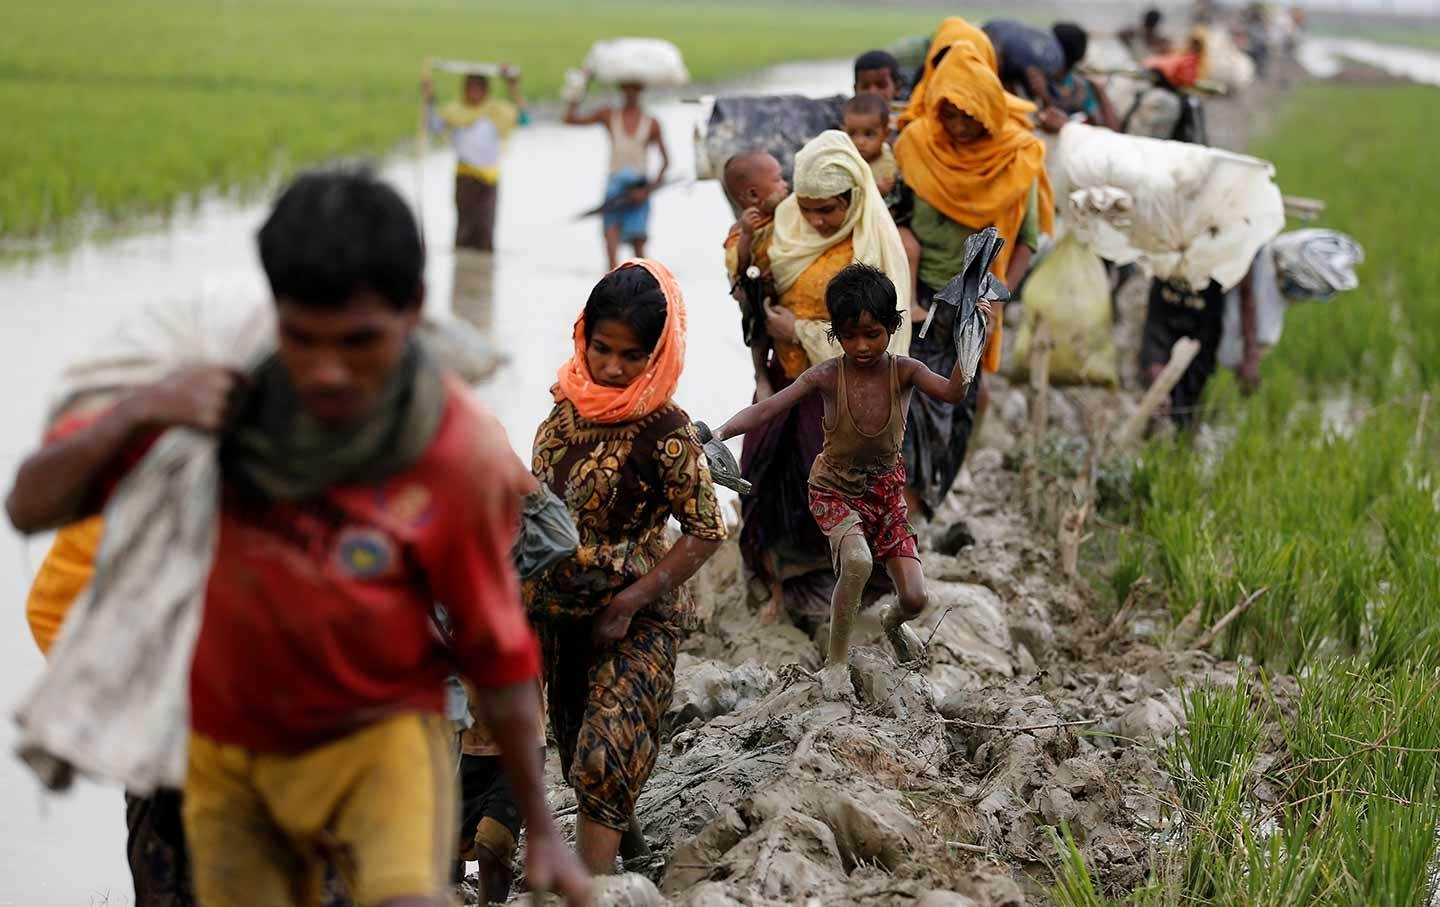 Australia provides additional funds for Rohingyas, locals